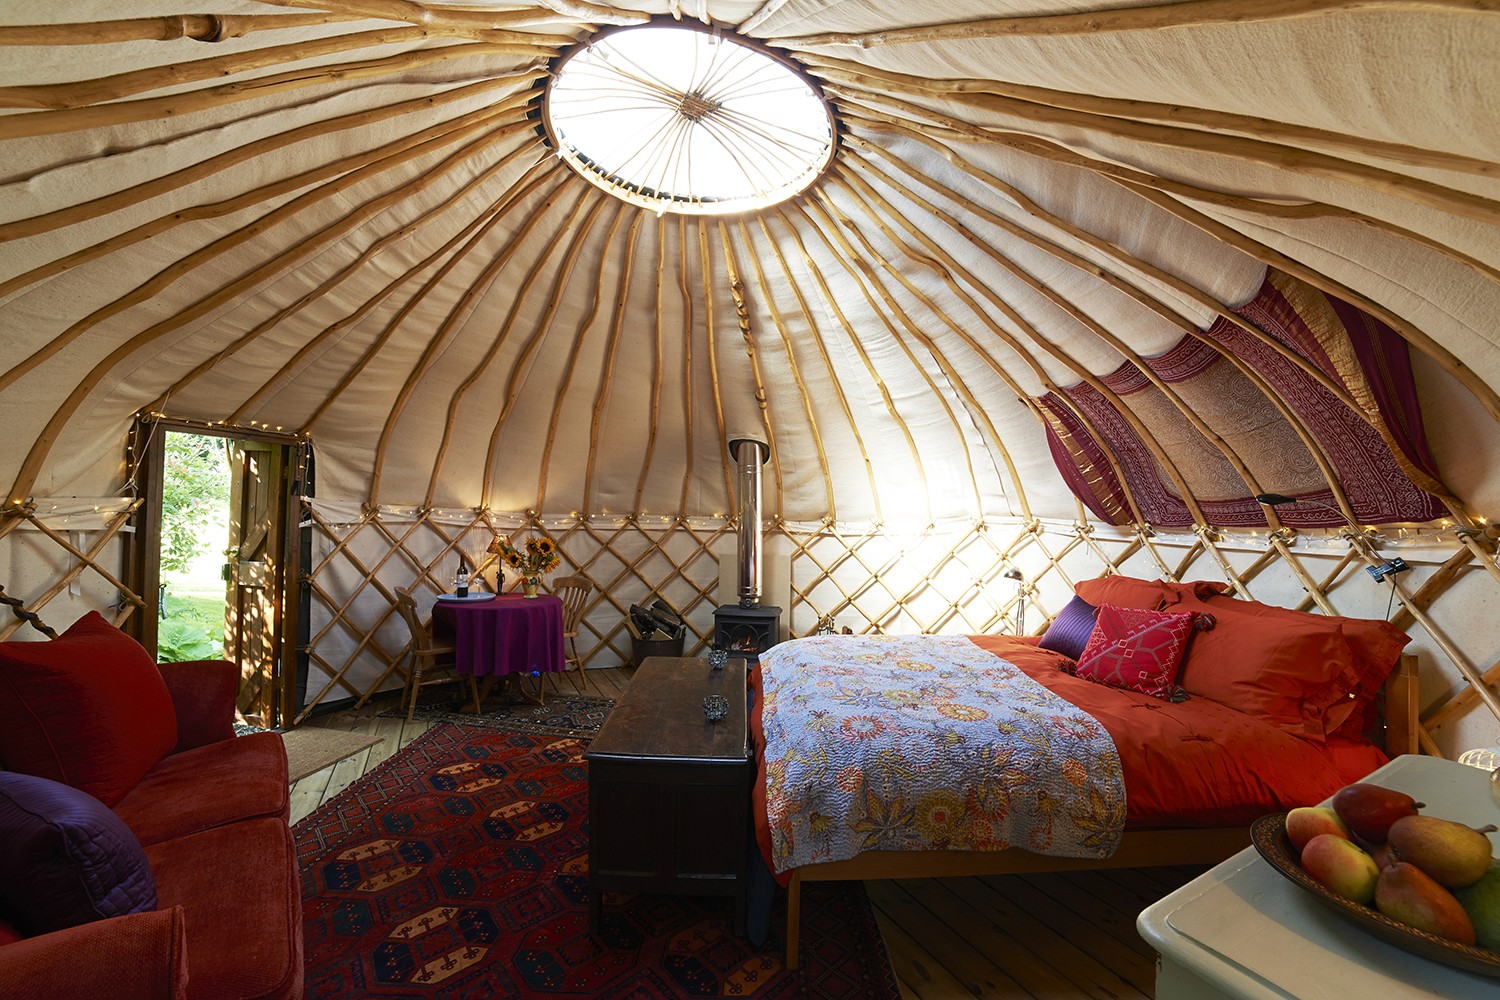 Best places to go glamping in Los Angeles